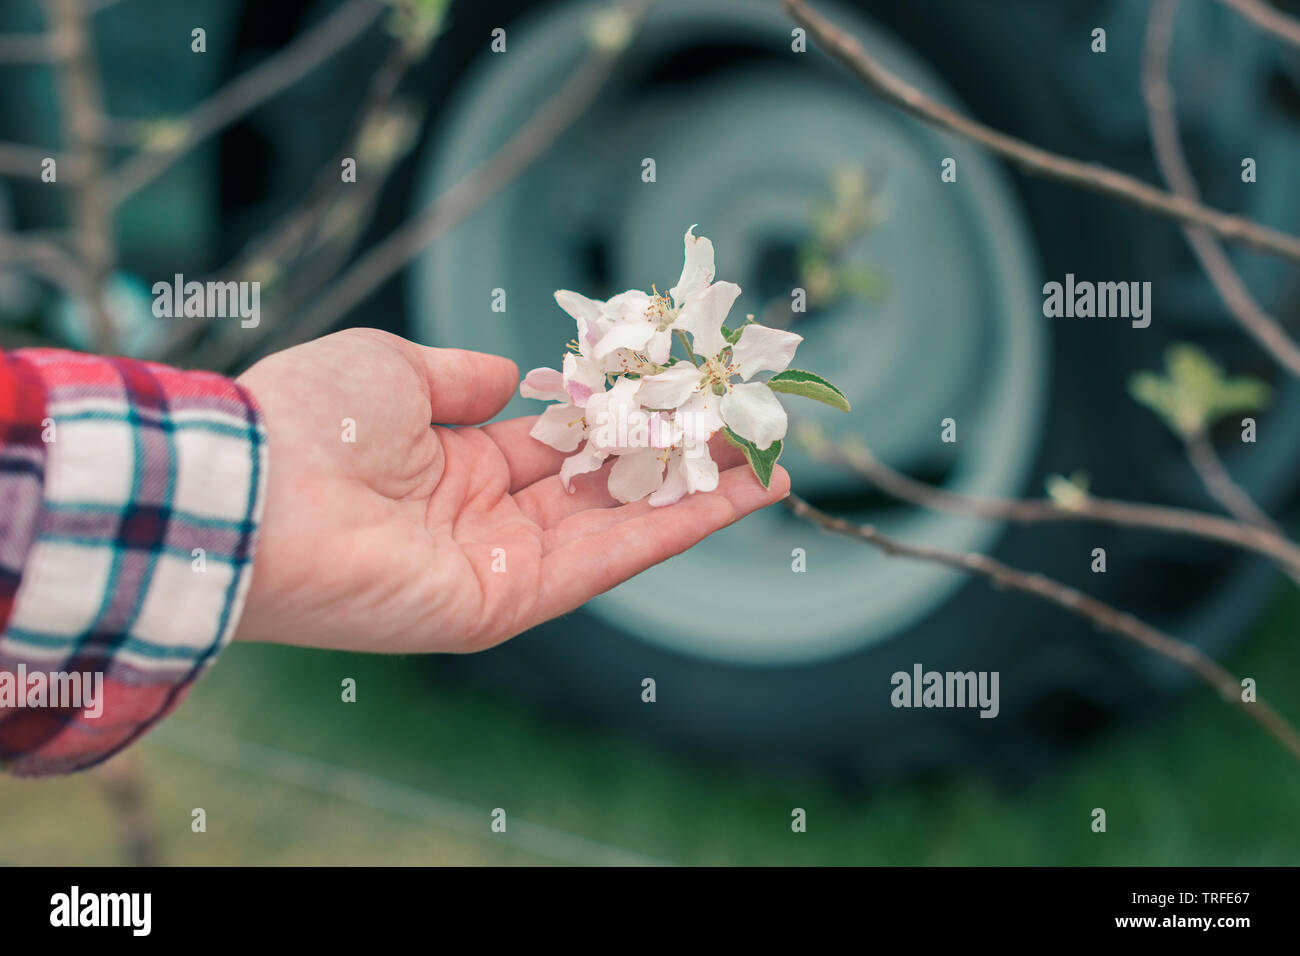 Farmer examining fruit tree blossom in orchard, close up of female hand touching gentle flowers - Stock Image